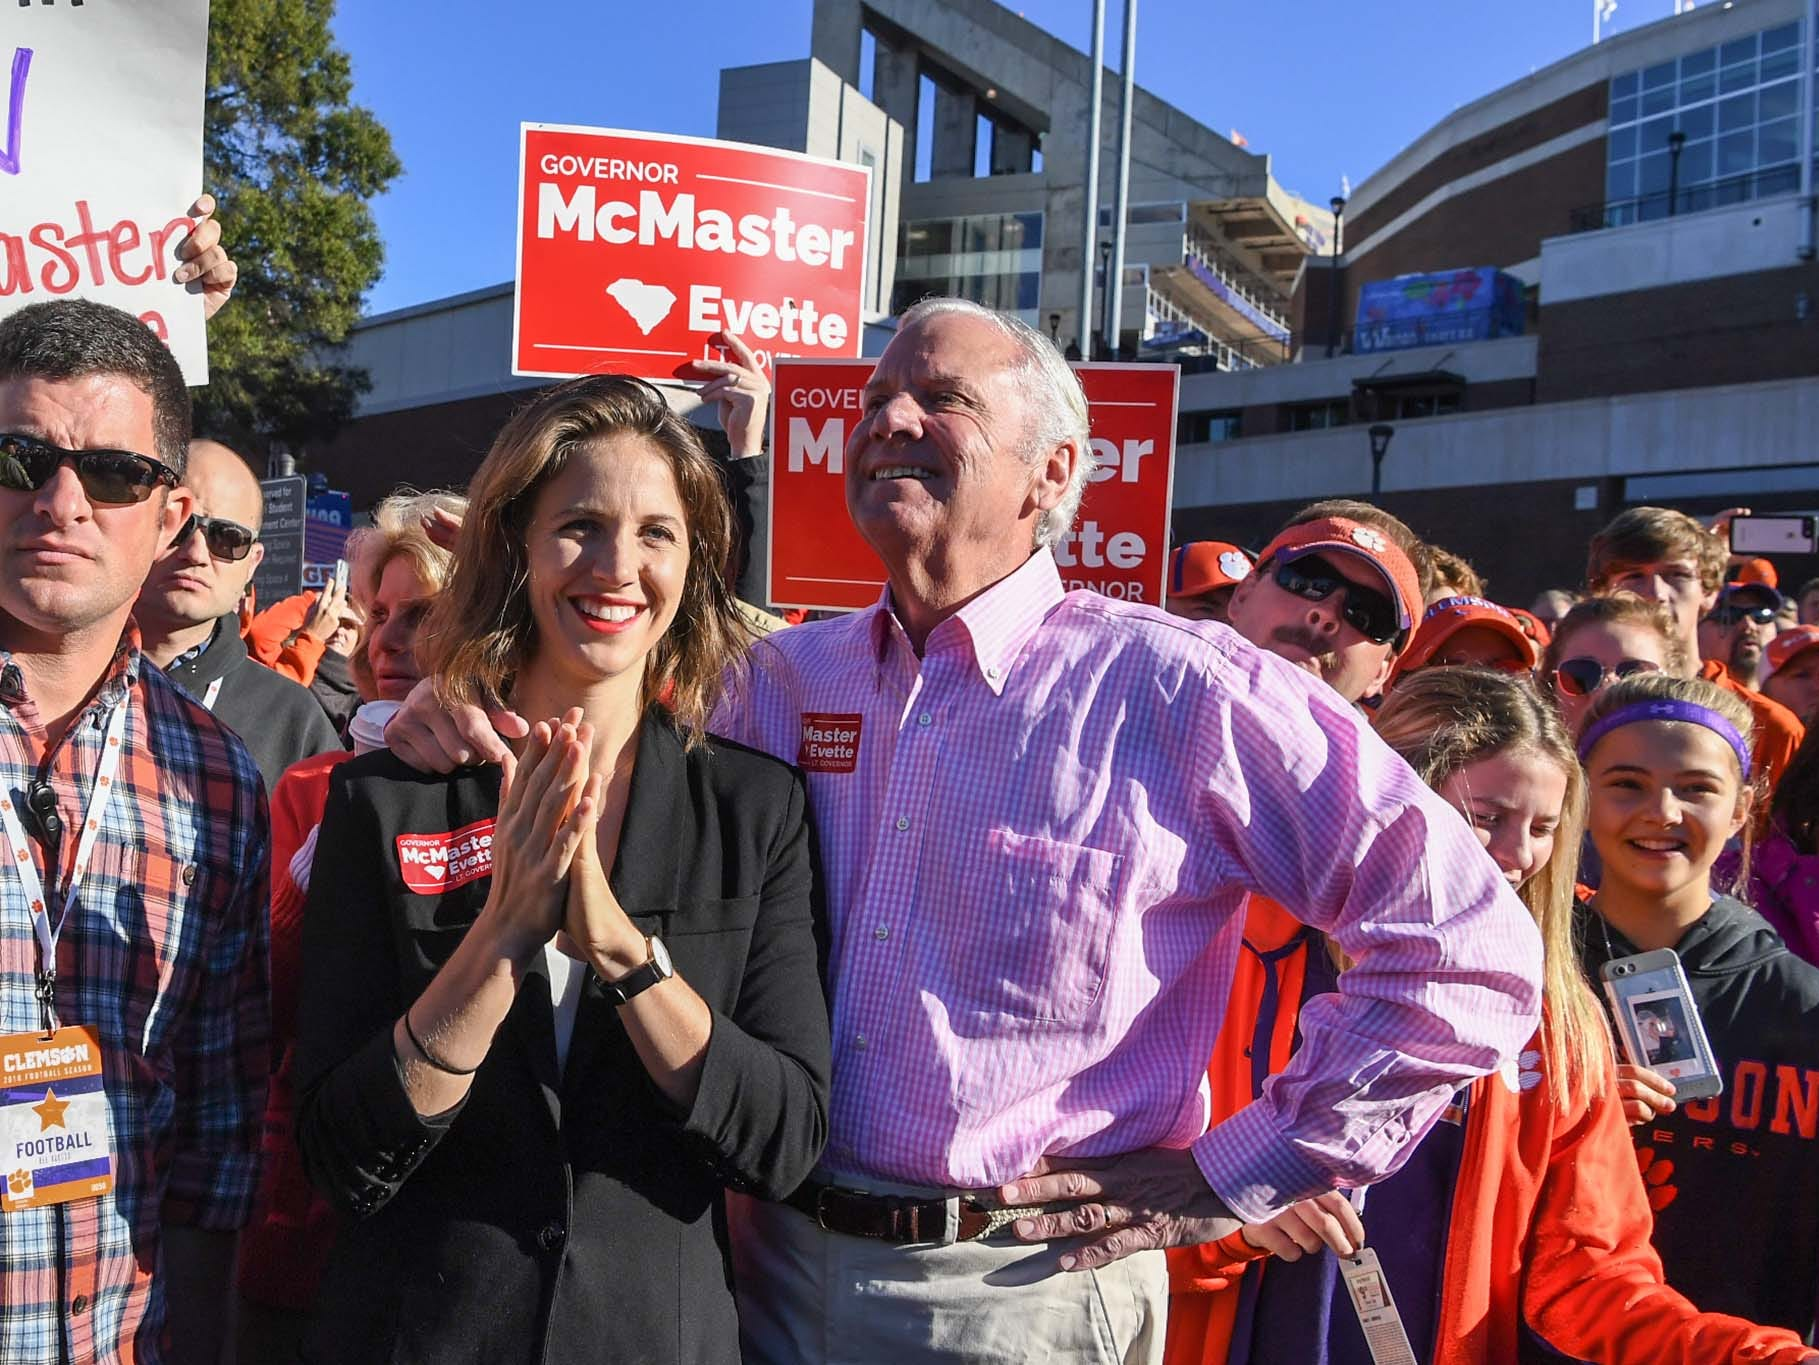 South Carolina Gov. Henry McMaster during Tiger Walk before the game in Memorial Stadium on Saturday, November 3, 2018.